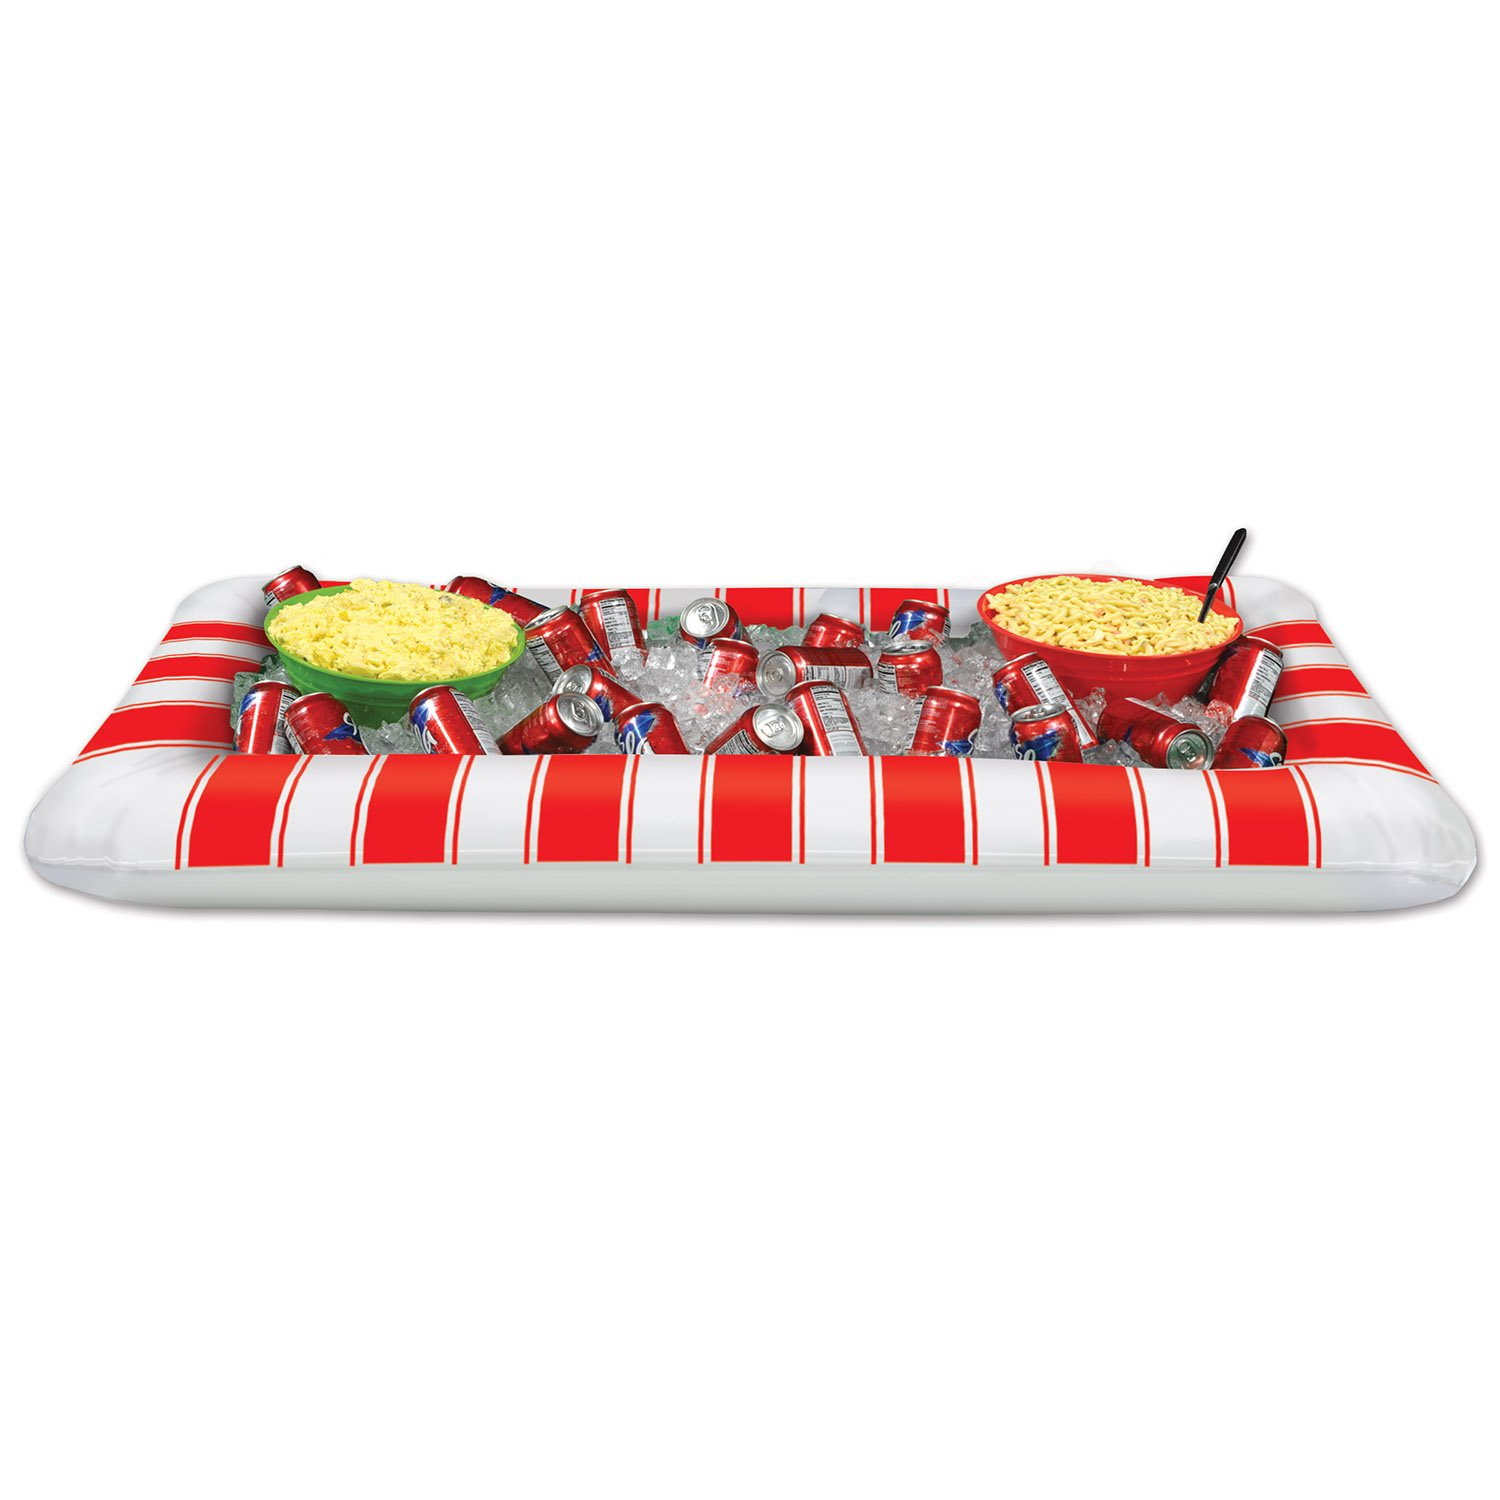 Beistle Inflatable Red and White Stripes Buffet Cooler, 28-Inch Width x 4' 5¾-Inch Length 54622